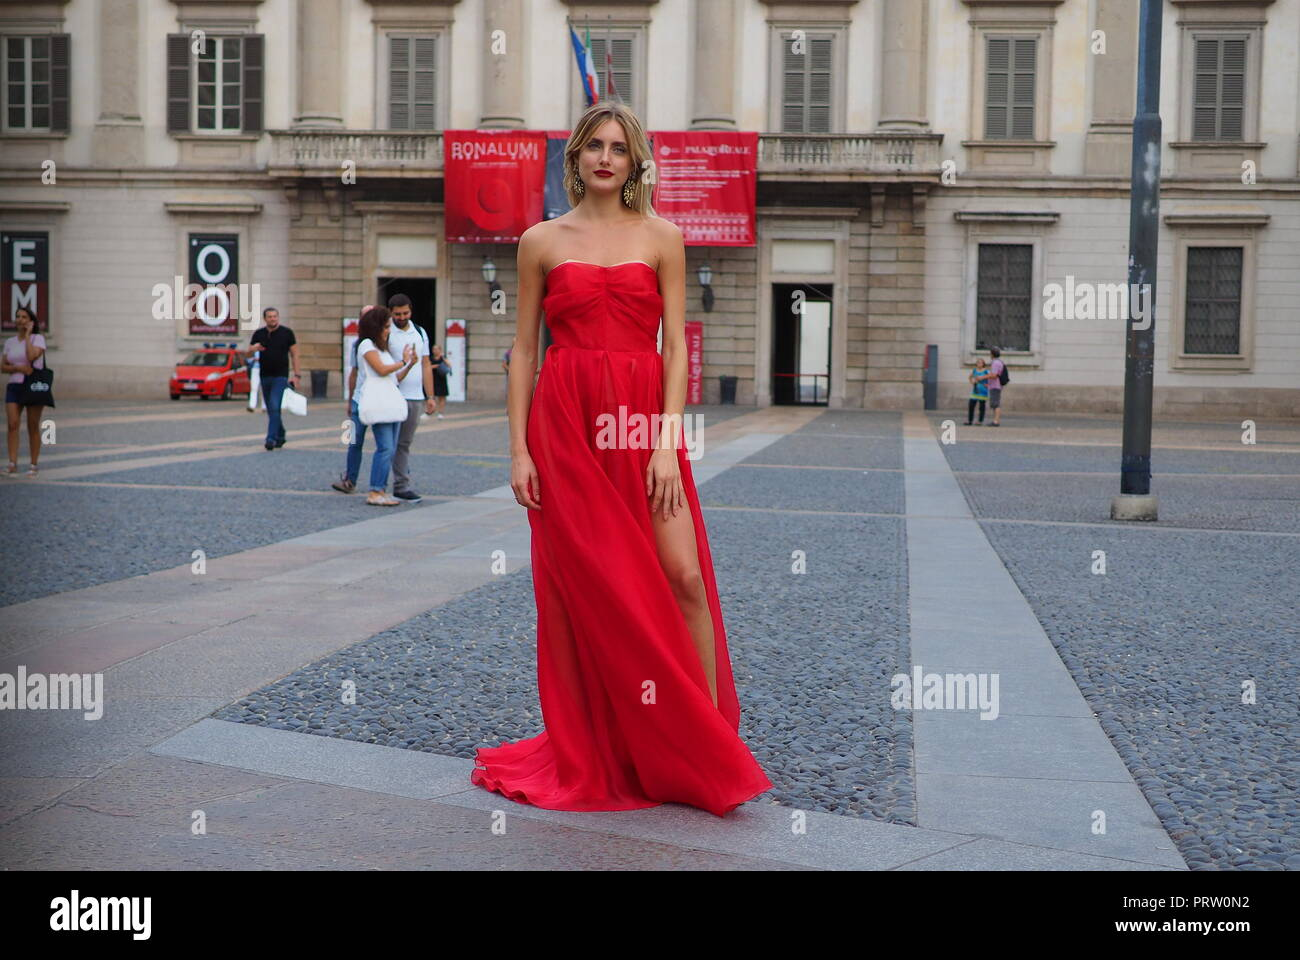 MILANO, Italy: September 21, 2018: Model posing for photographers in Duomo square after ACT 1 fashion show during MFW Stock Photo